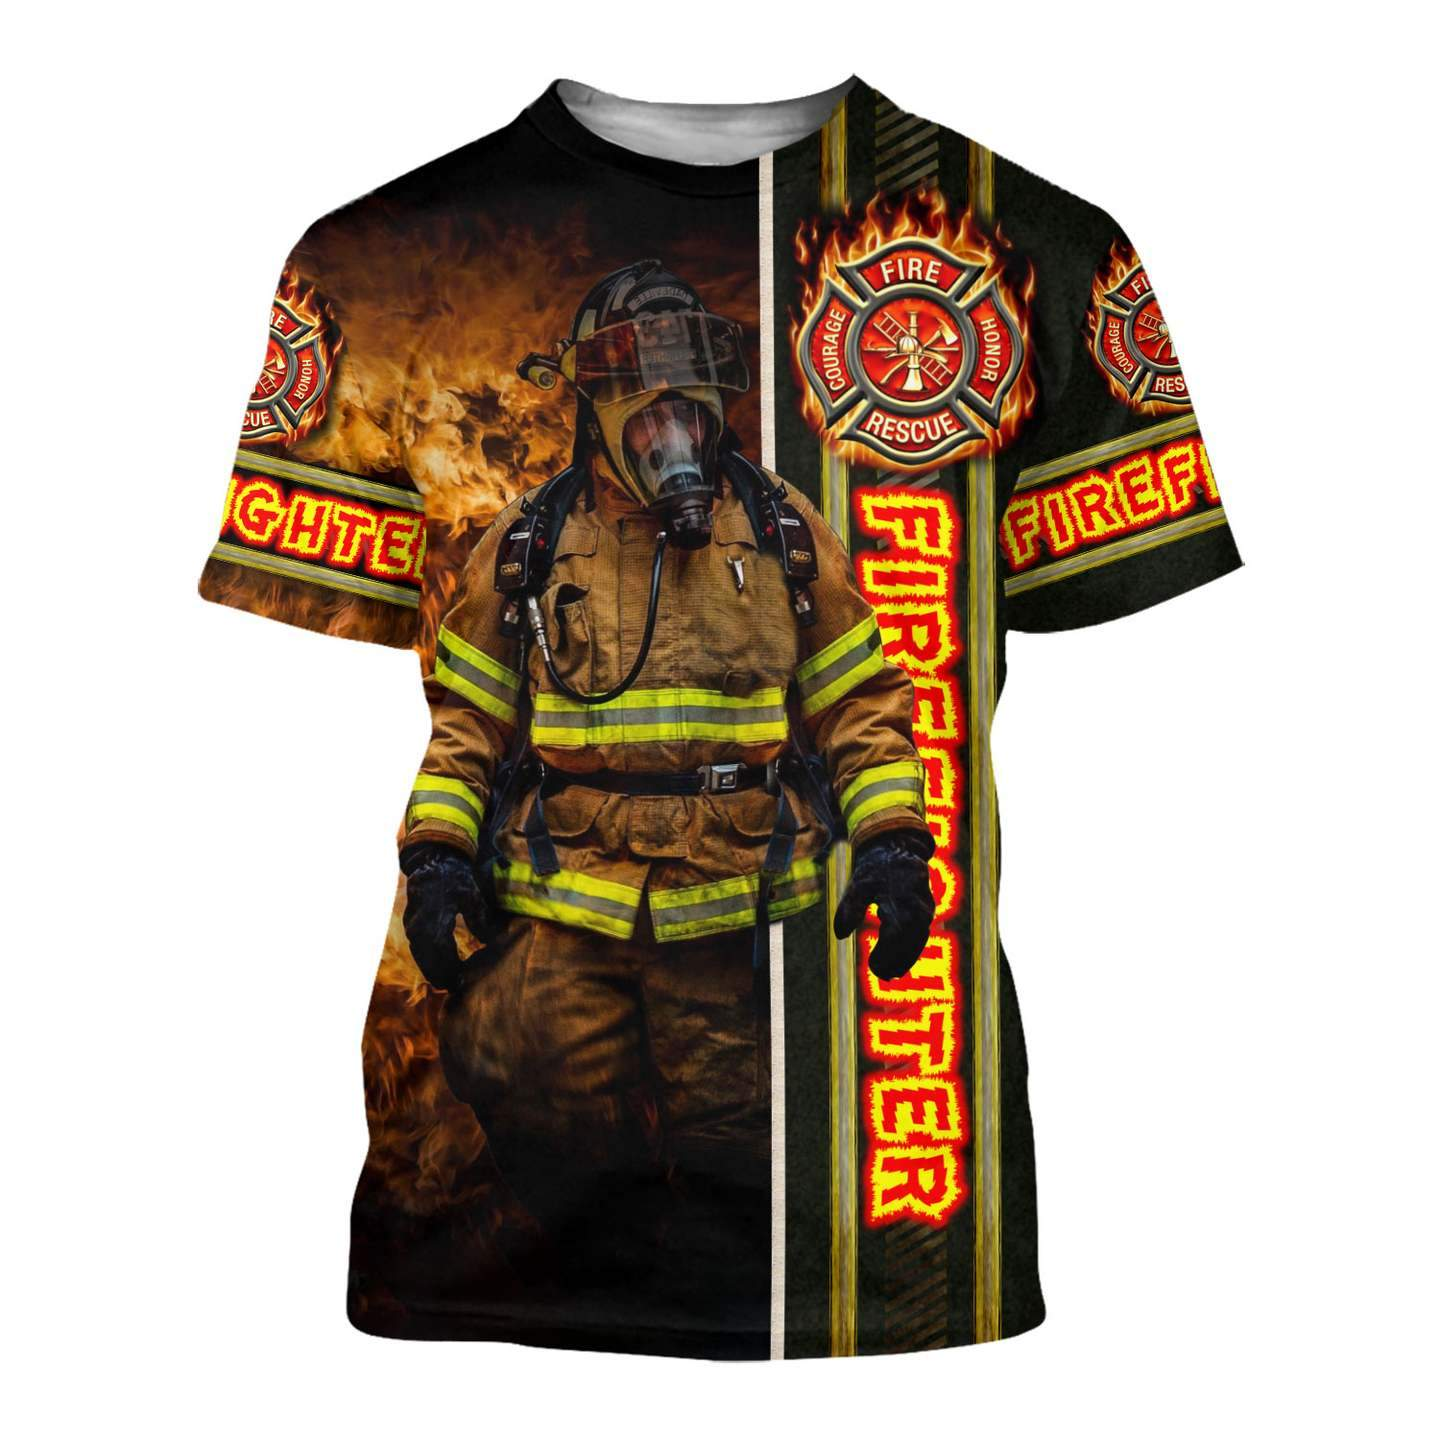 Fire fight 3d all over printed tshirt